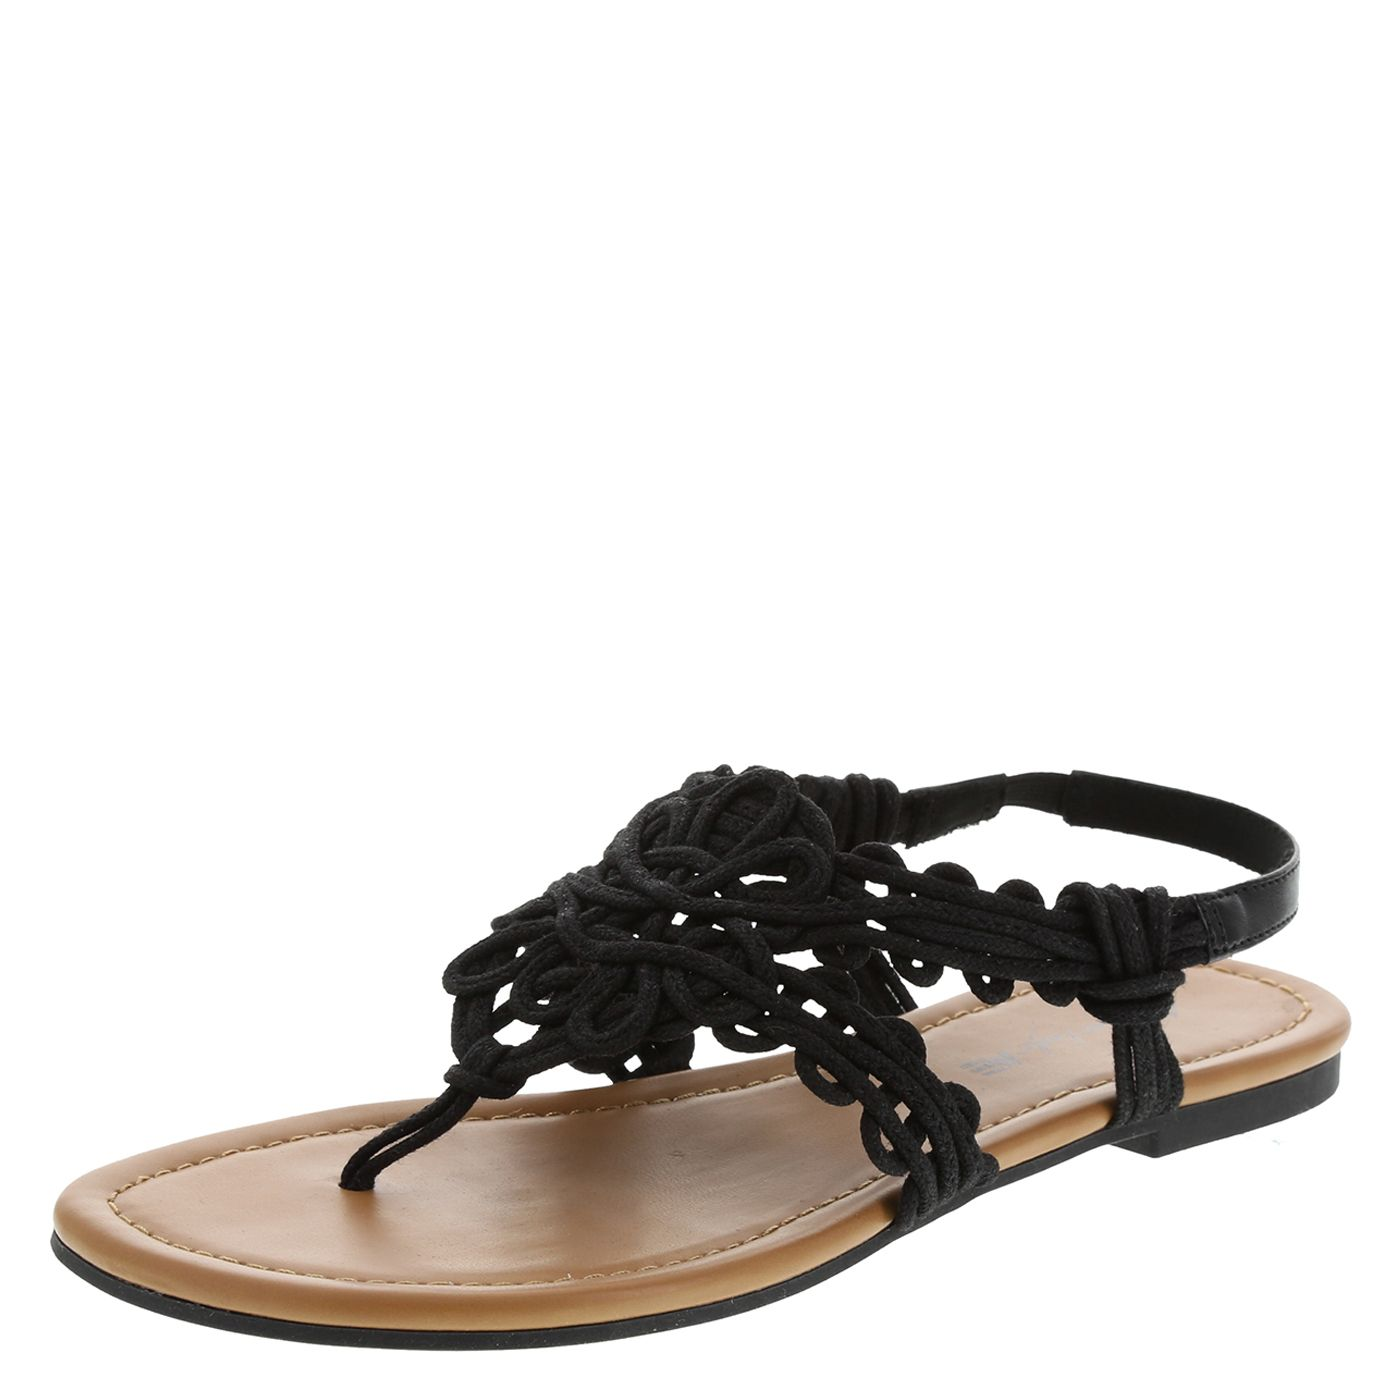 Unique Payless Wide Width Sandals